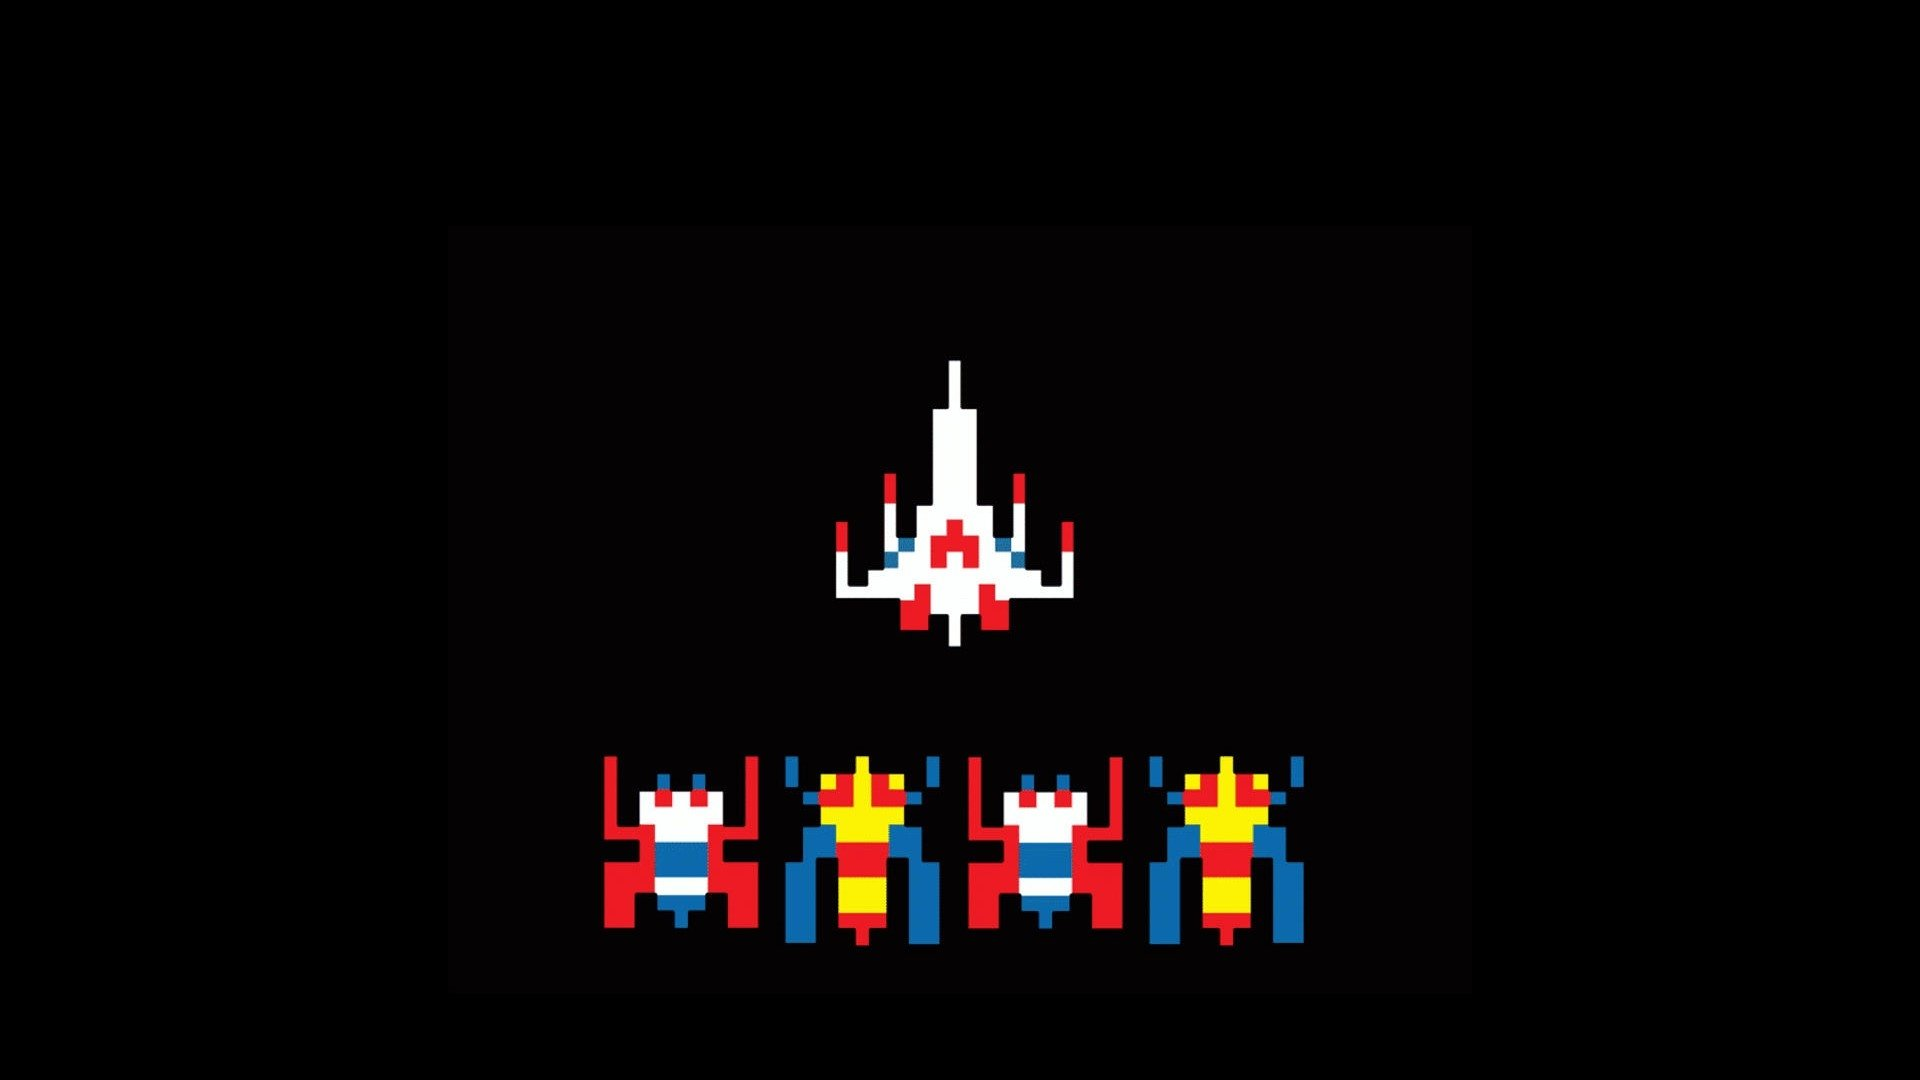 galaga wallpaper iphone - photo #13